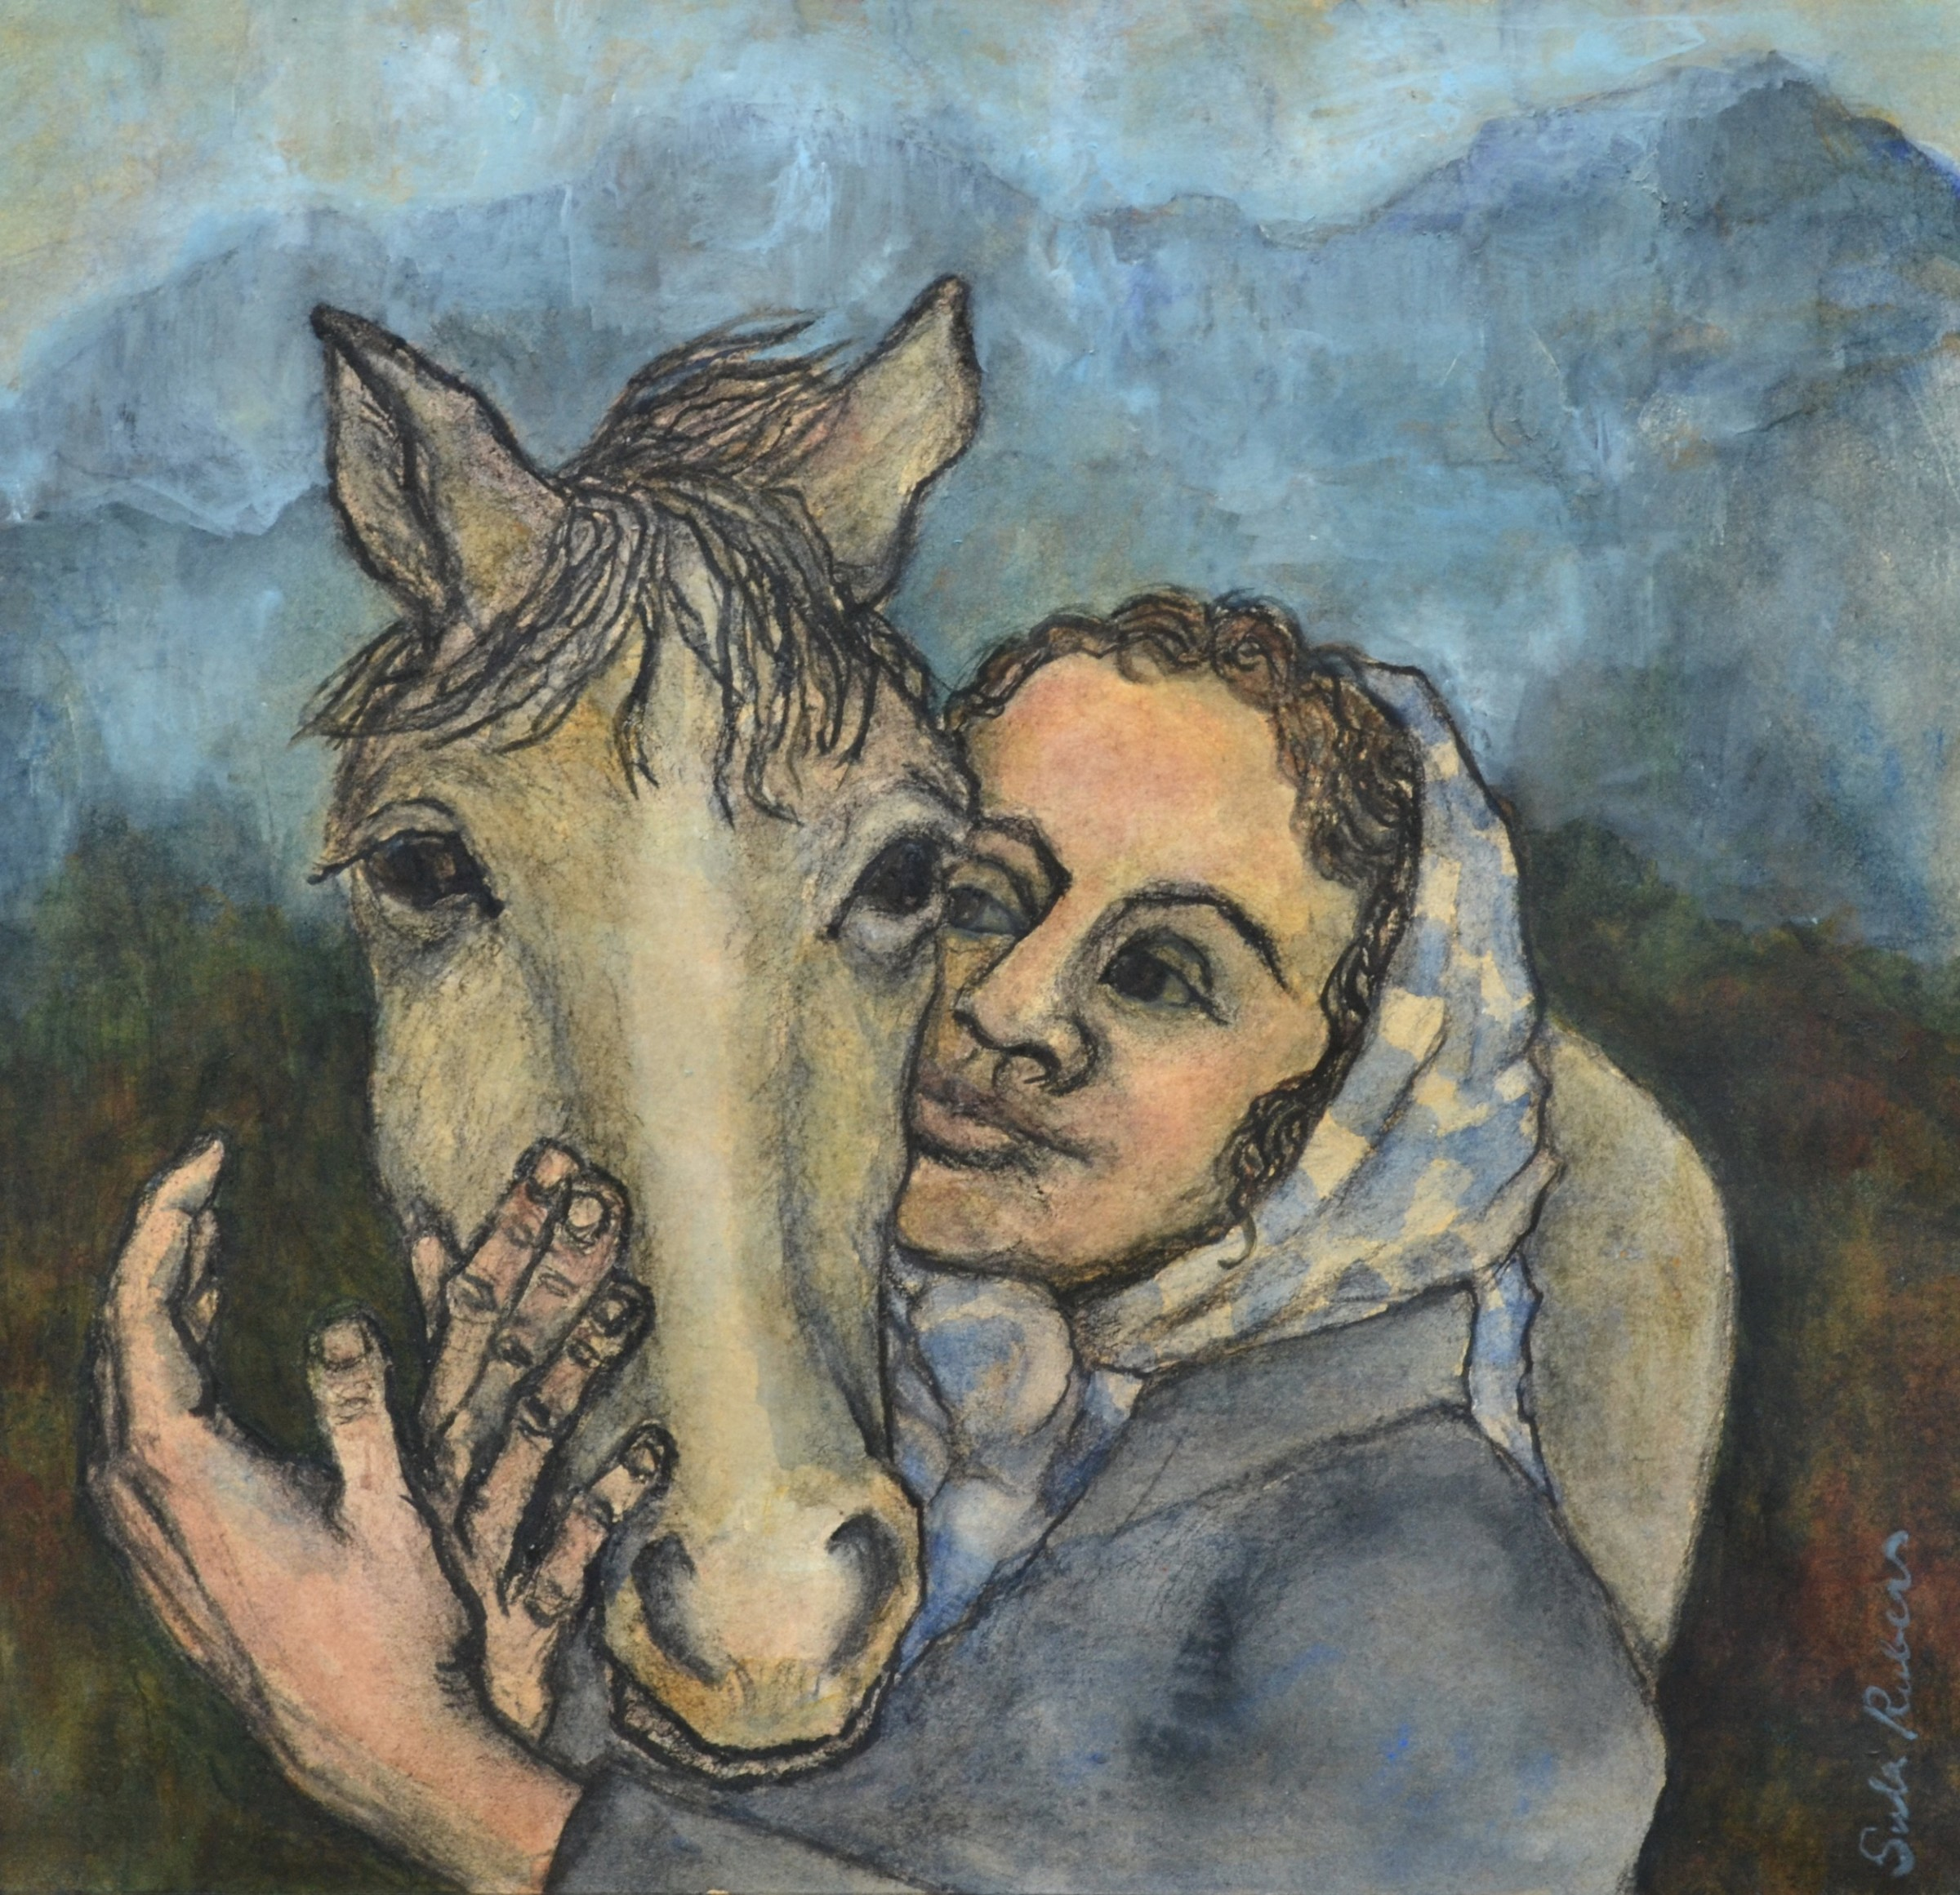 """<span class=""""link fancybox-details-link""""><a href=""""/artists/212-sula-rubens/works/12175-sula-rubens-mountain-girl-with-horse/"""">View Detail Page</a></span><div class=""""artist""""><span class=""""artist""""><strong>Sula Rubens</strong></span></div><div class=""""title""""><em>Mountain Girl with Horse</em></div><div class=""""medium"""">ink, watercolour & acrylic</div><div class=""""dimensions"""">Frame: 60 x 60 cm<br /> Artwork: 36.5 x 37 cm</div><div class=""""price"""">£950.00</div>"""